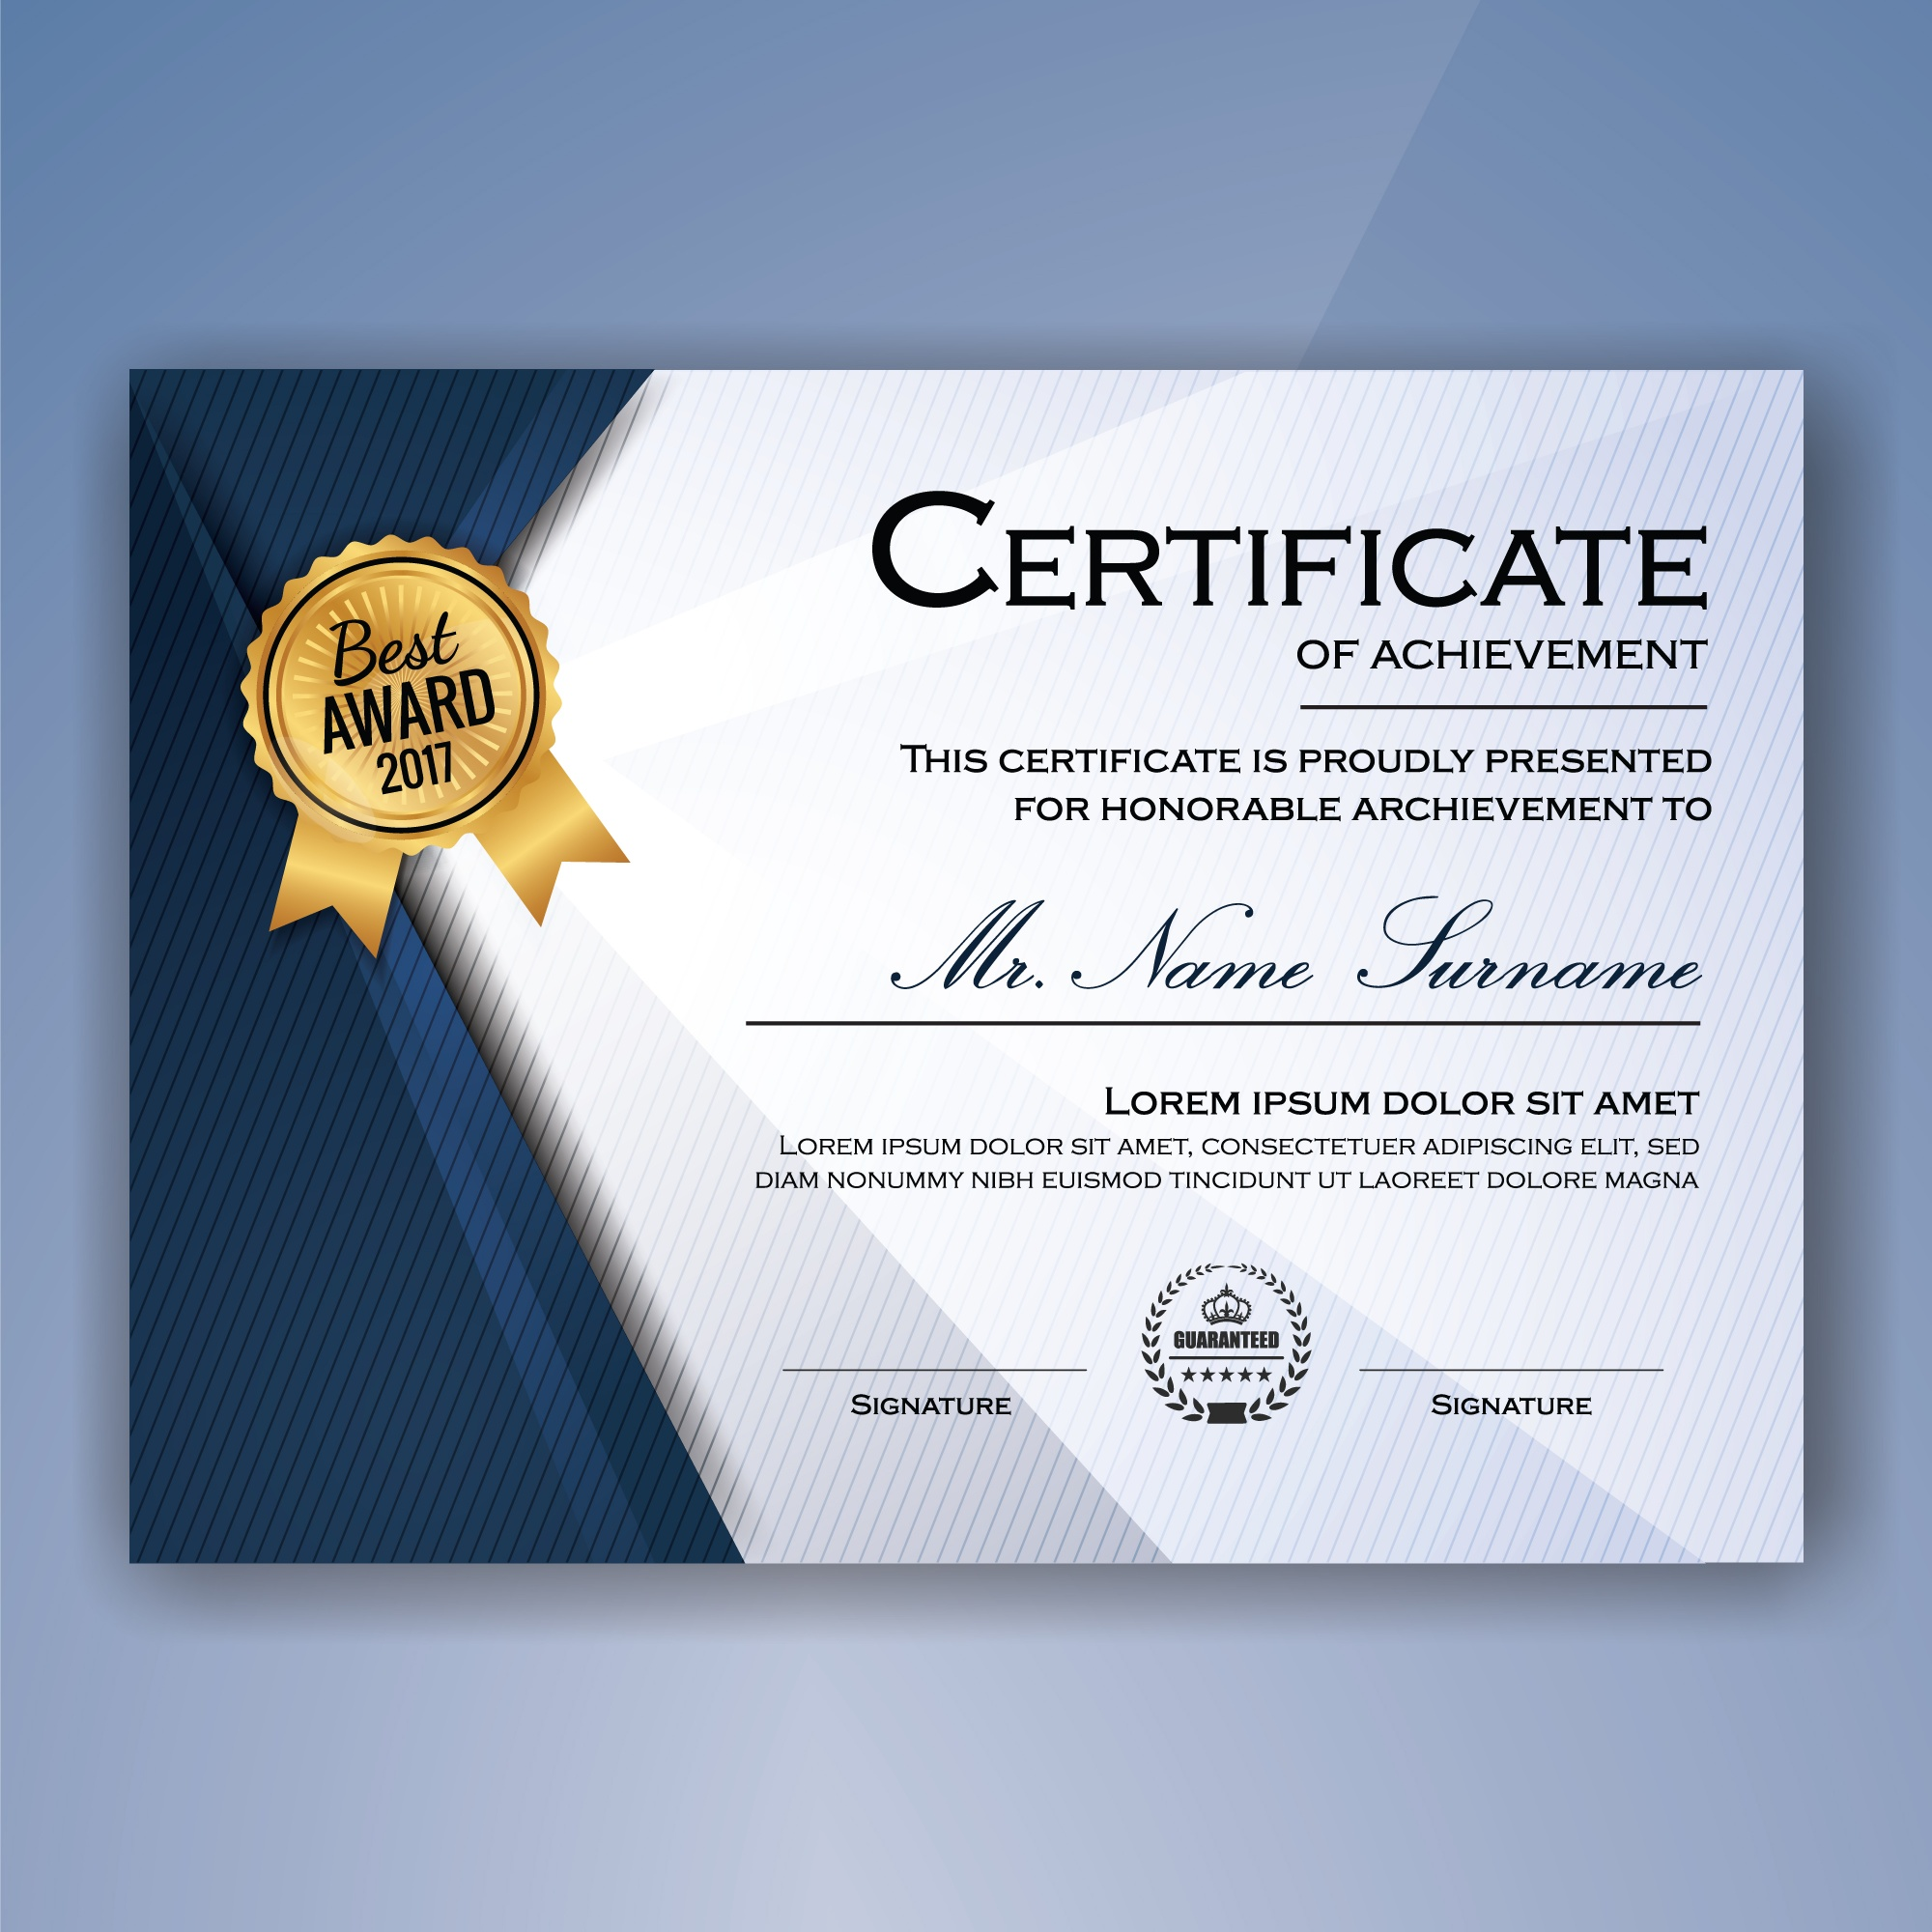 Blue and white elegant certificat of achievement template background